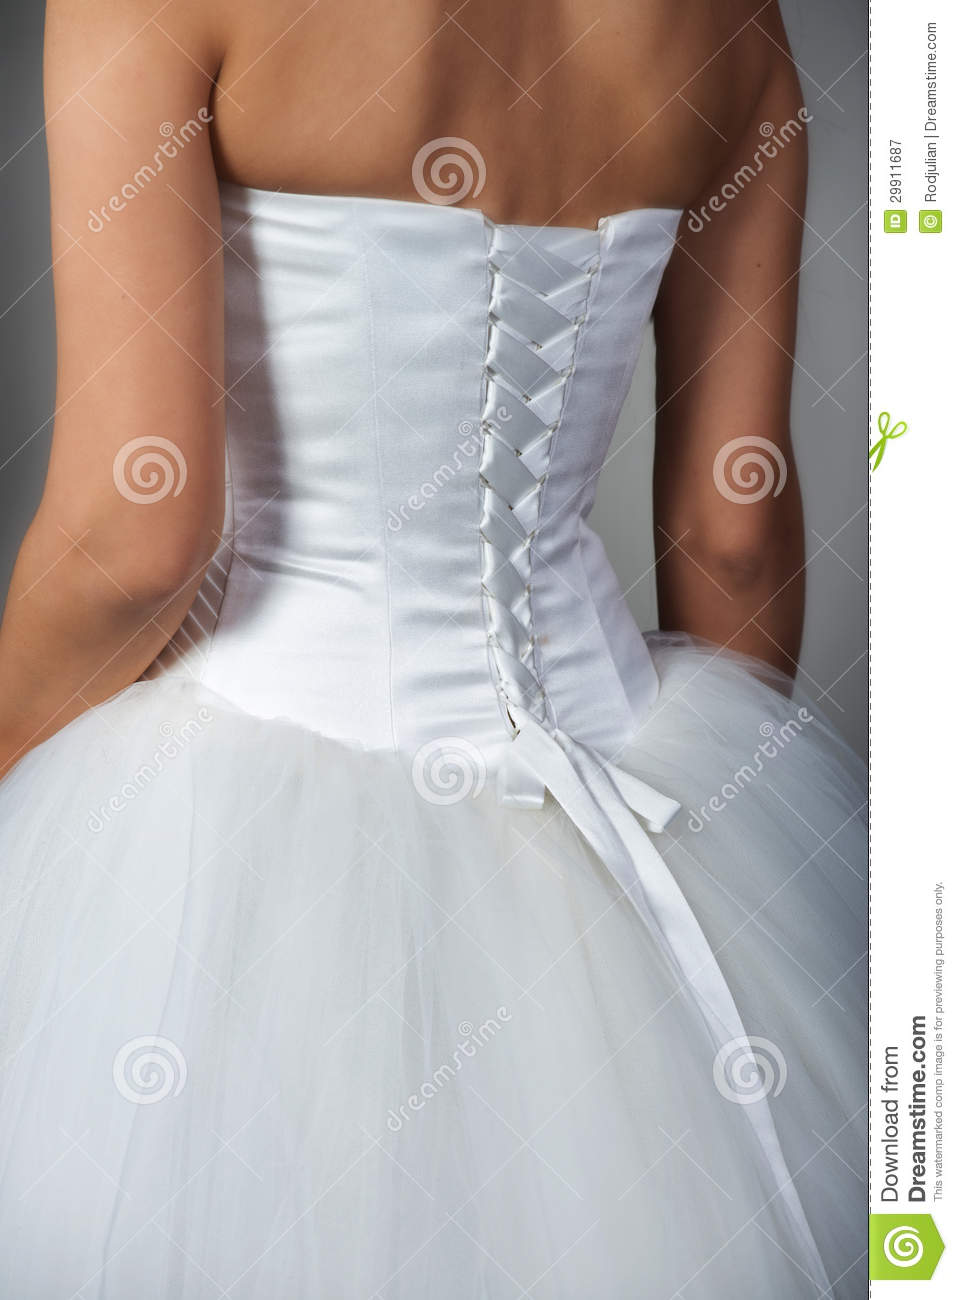 Fragment Of A Wedding Dress Stock Image - Image of engagement ...